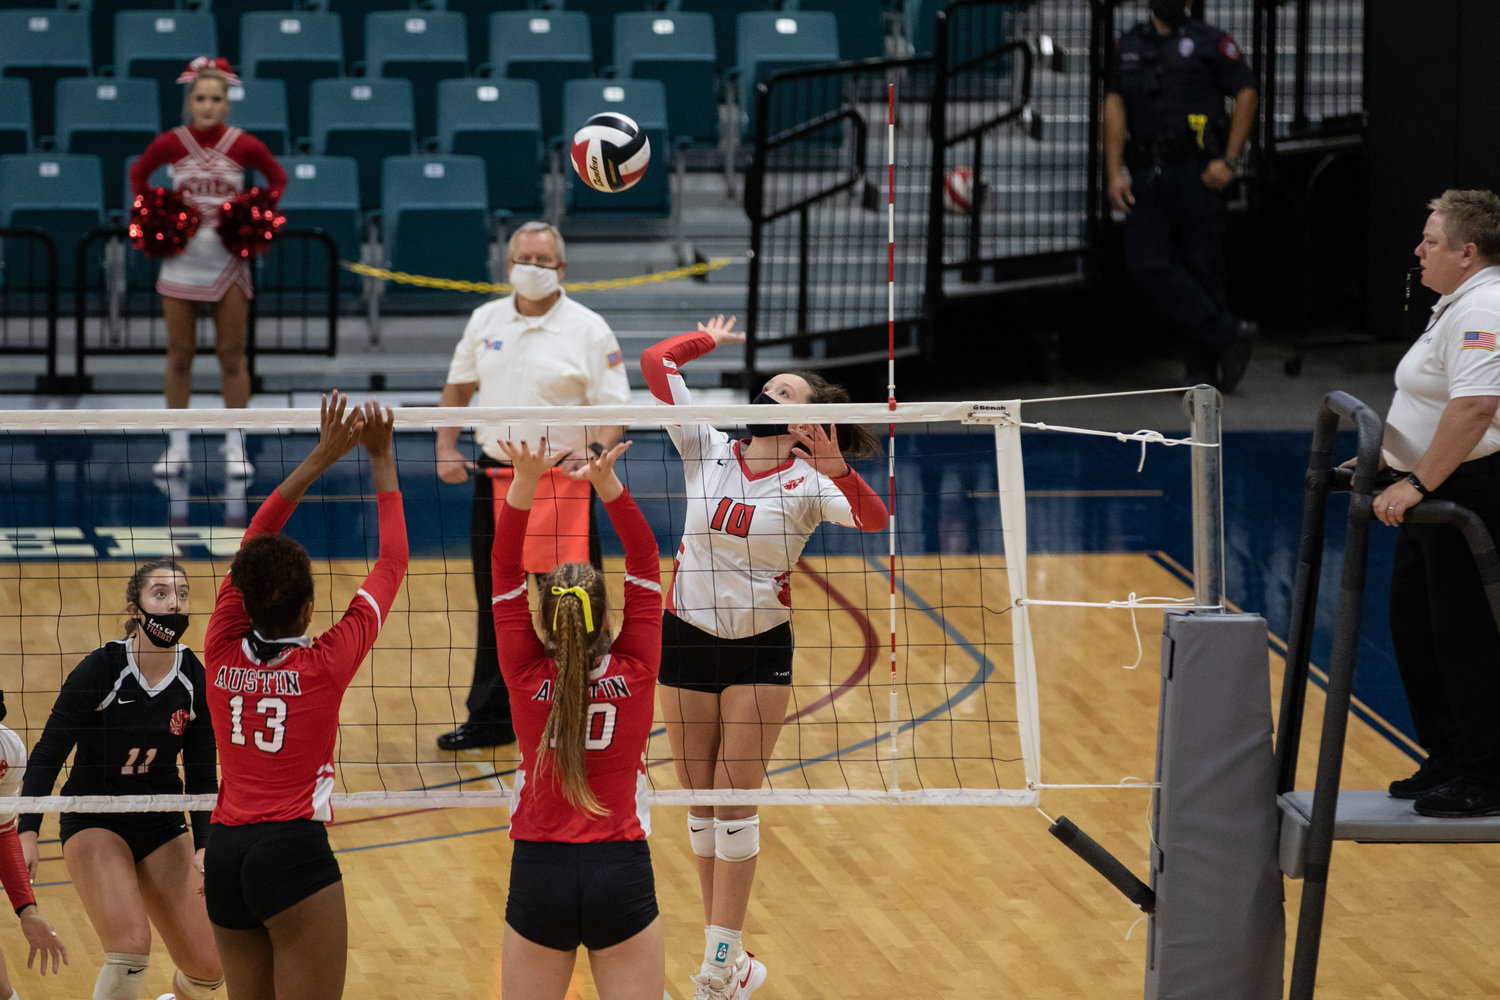 Katy High senior Abby Sherman goes up for a swing during the Tigers' sweep of Fort Bend Austin in their Class 6A bi-district playoff match Friday at the Merrell Center.